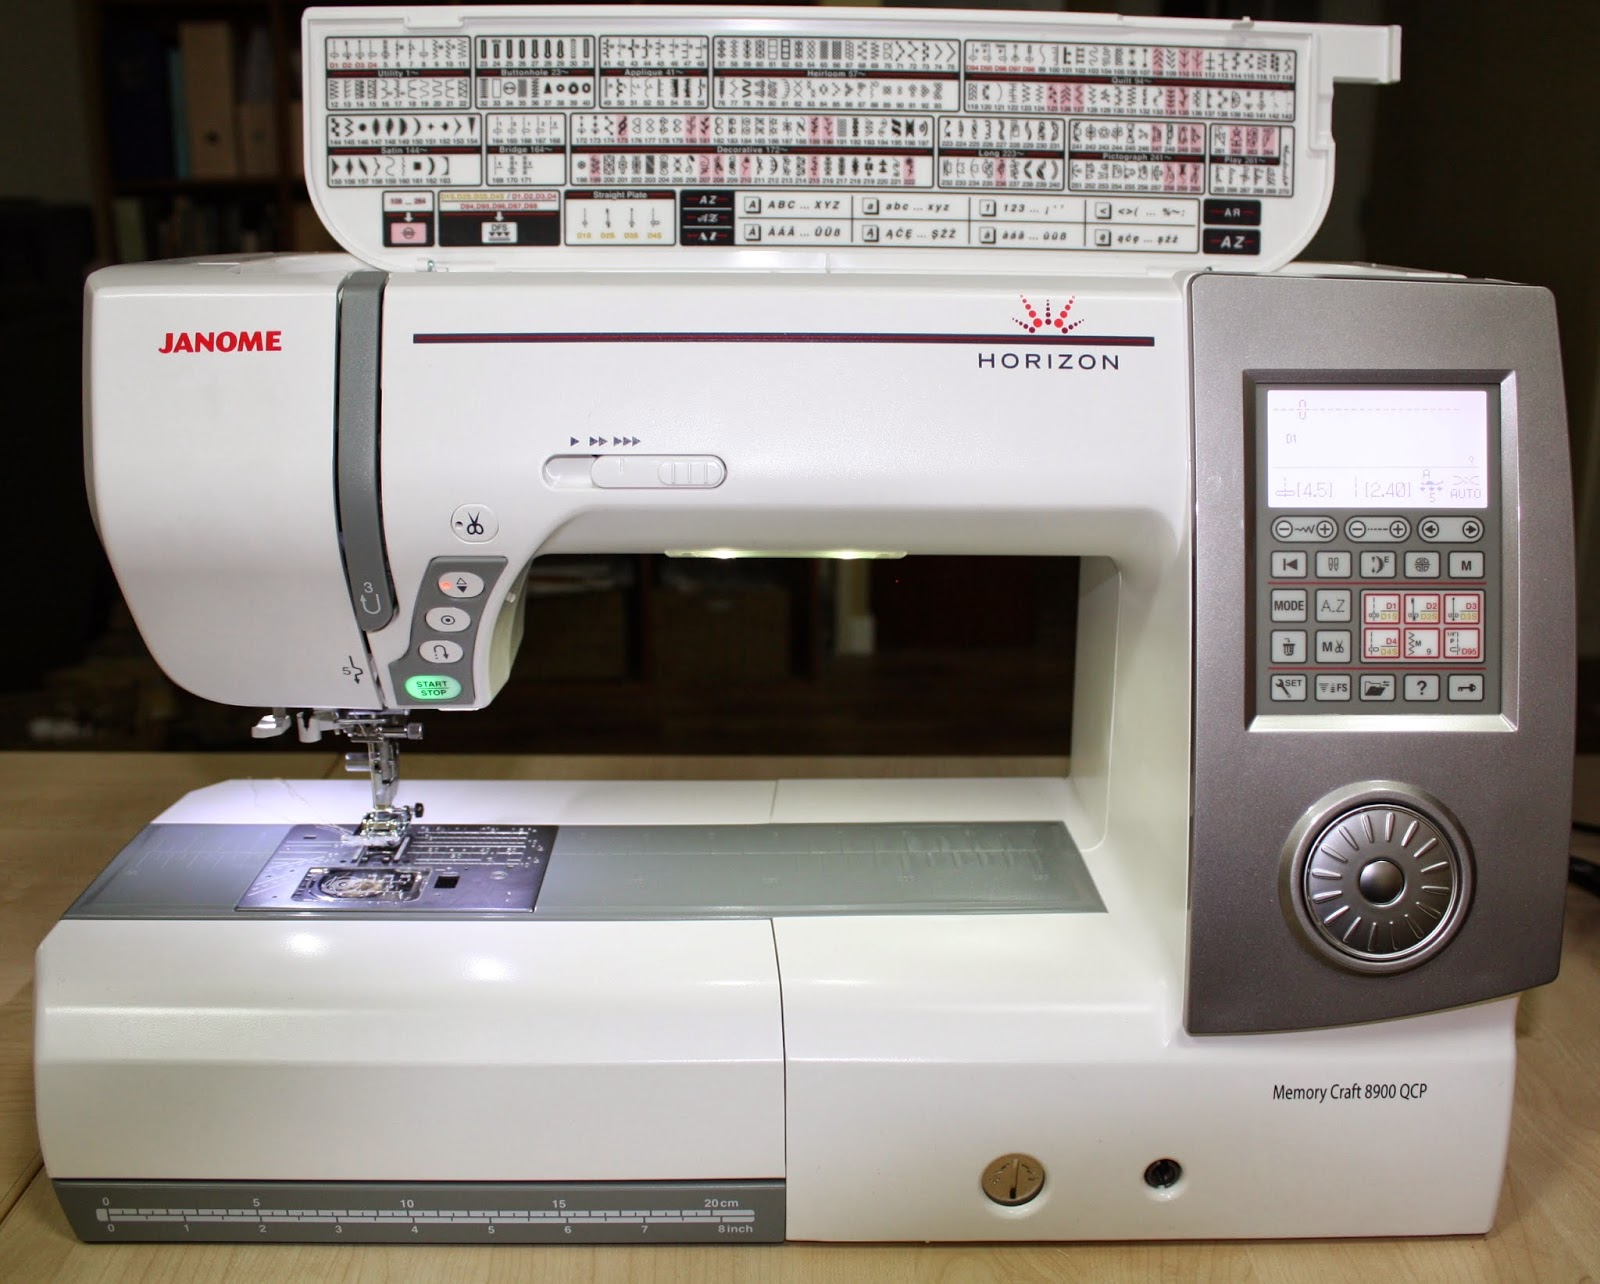 Janome horizon memory craft 8900 - This New Delightful Baby Has A Lot Of Cool Features Comes With 270 Stitches With 9mm Stitch Width It Has A Huge 11 Free Arm Work Space Which Is Awesome